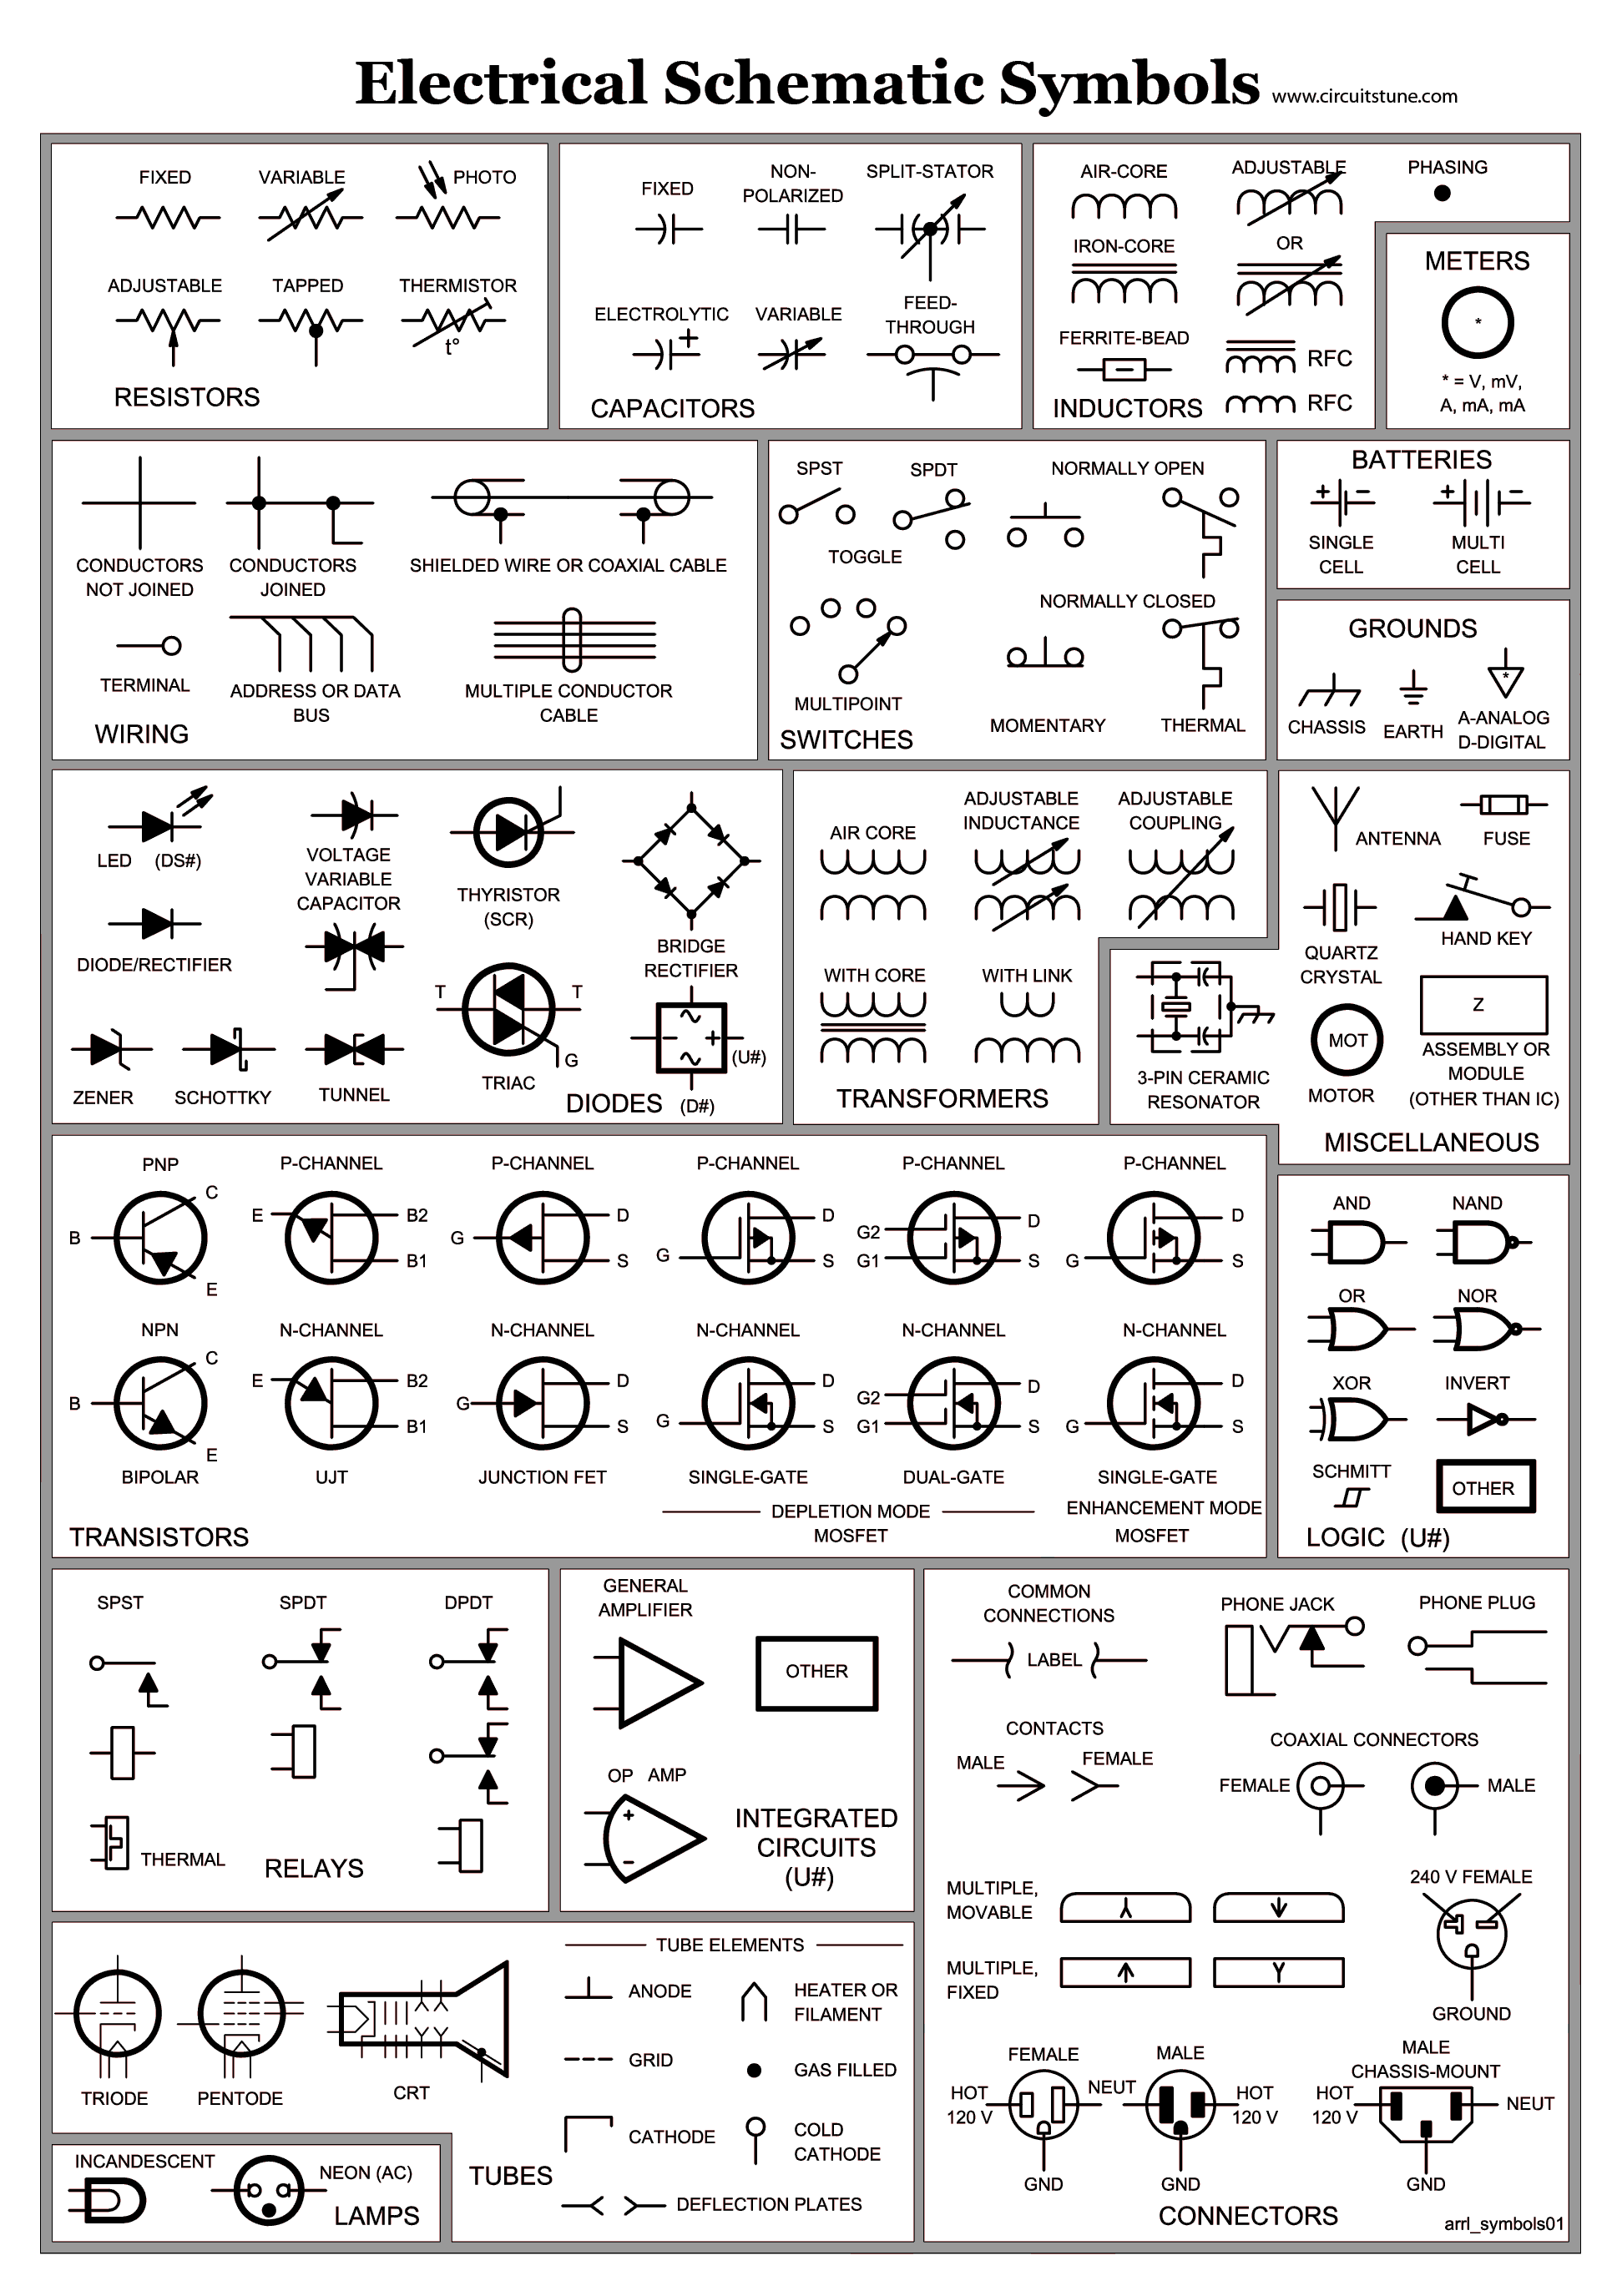 electrical schematic symbols wire diagram symbols automotive wiring rh pinterest co uk autosleeper symbol wiring diagram autosleeper symbol wiring diagram